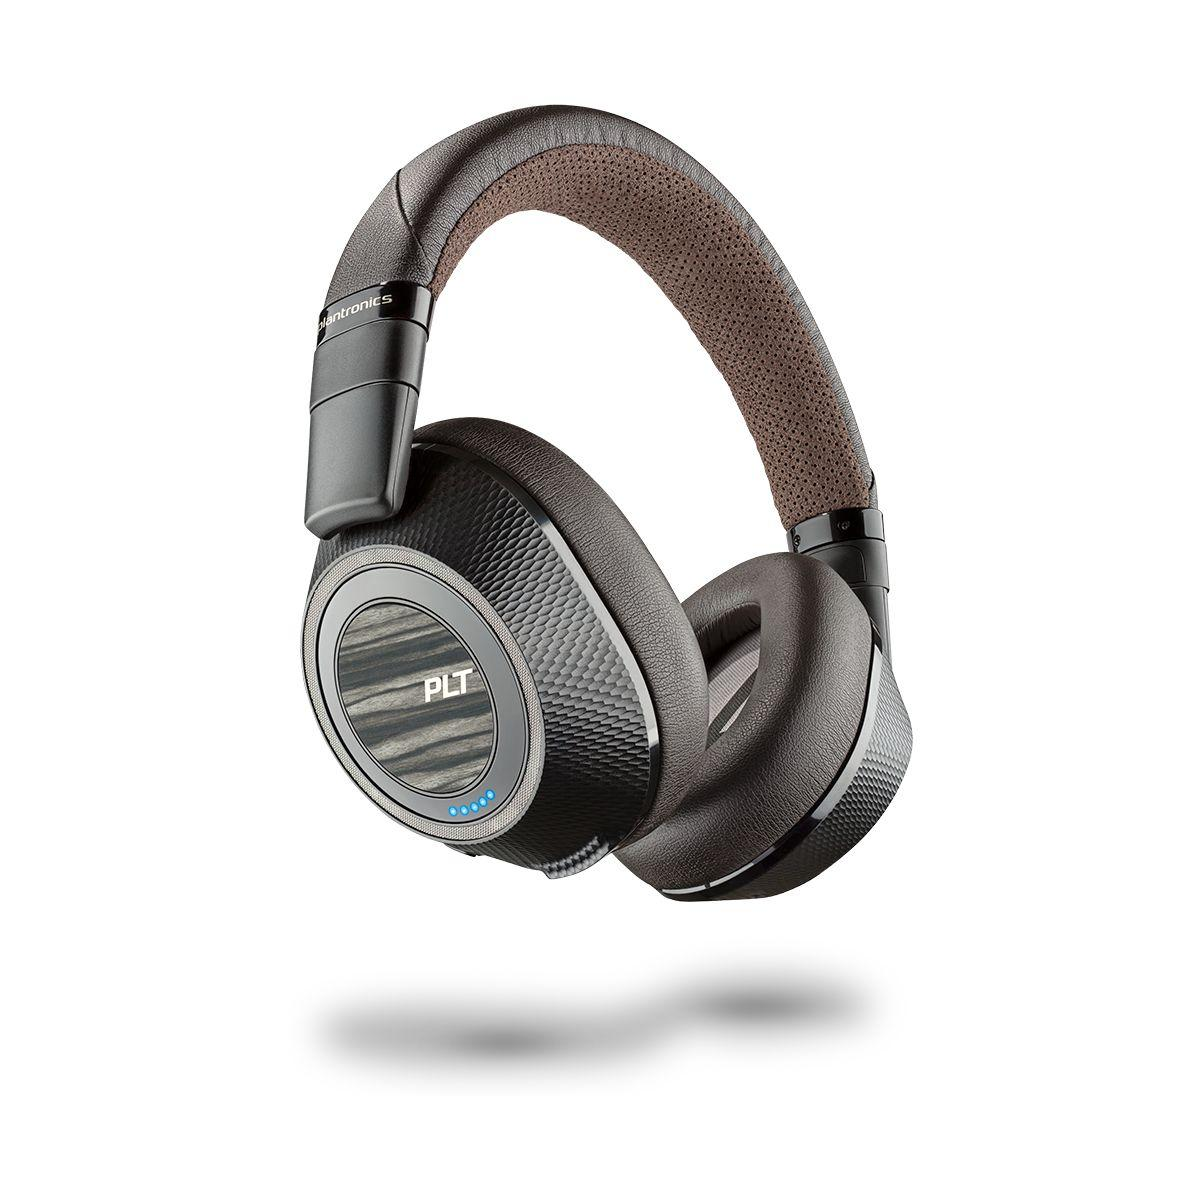 Casque bluetooth plantronics backbeat pro 2 black - livraison offerte : code liv (photo)